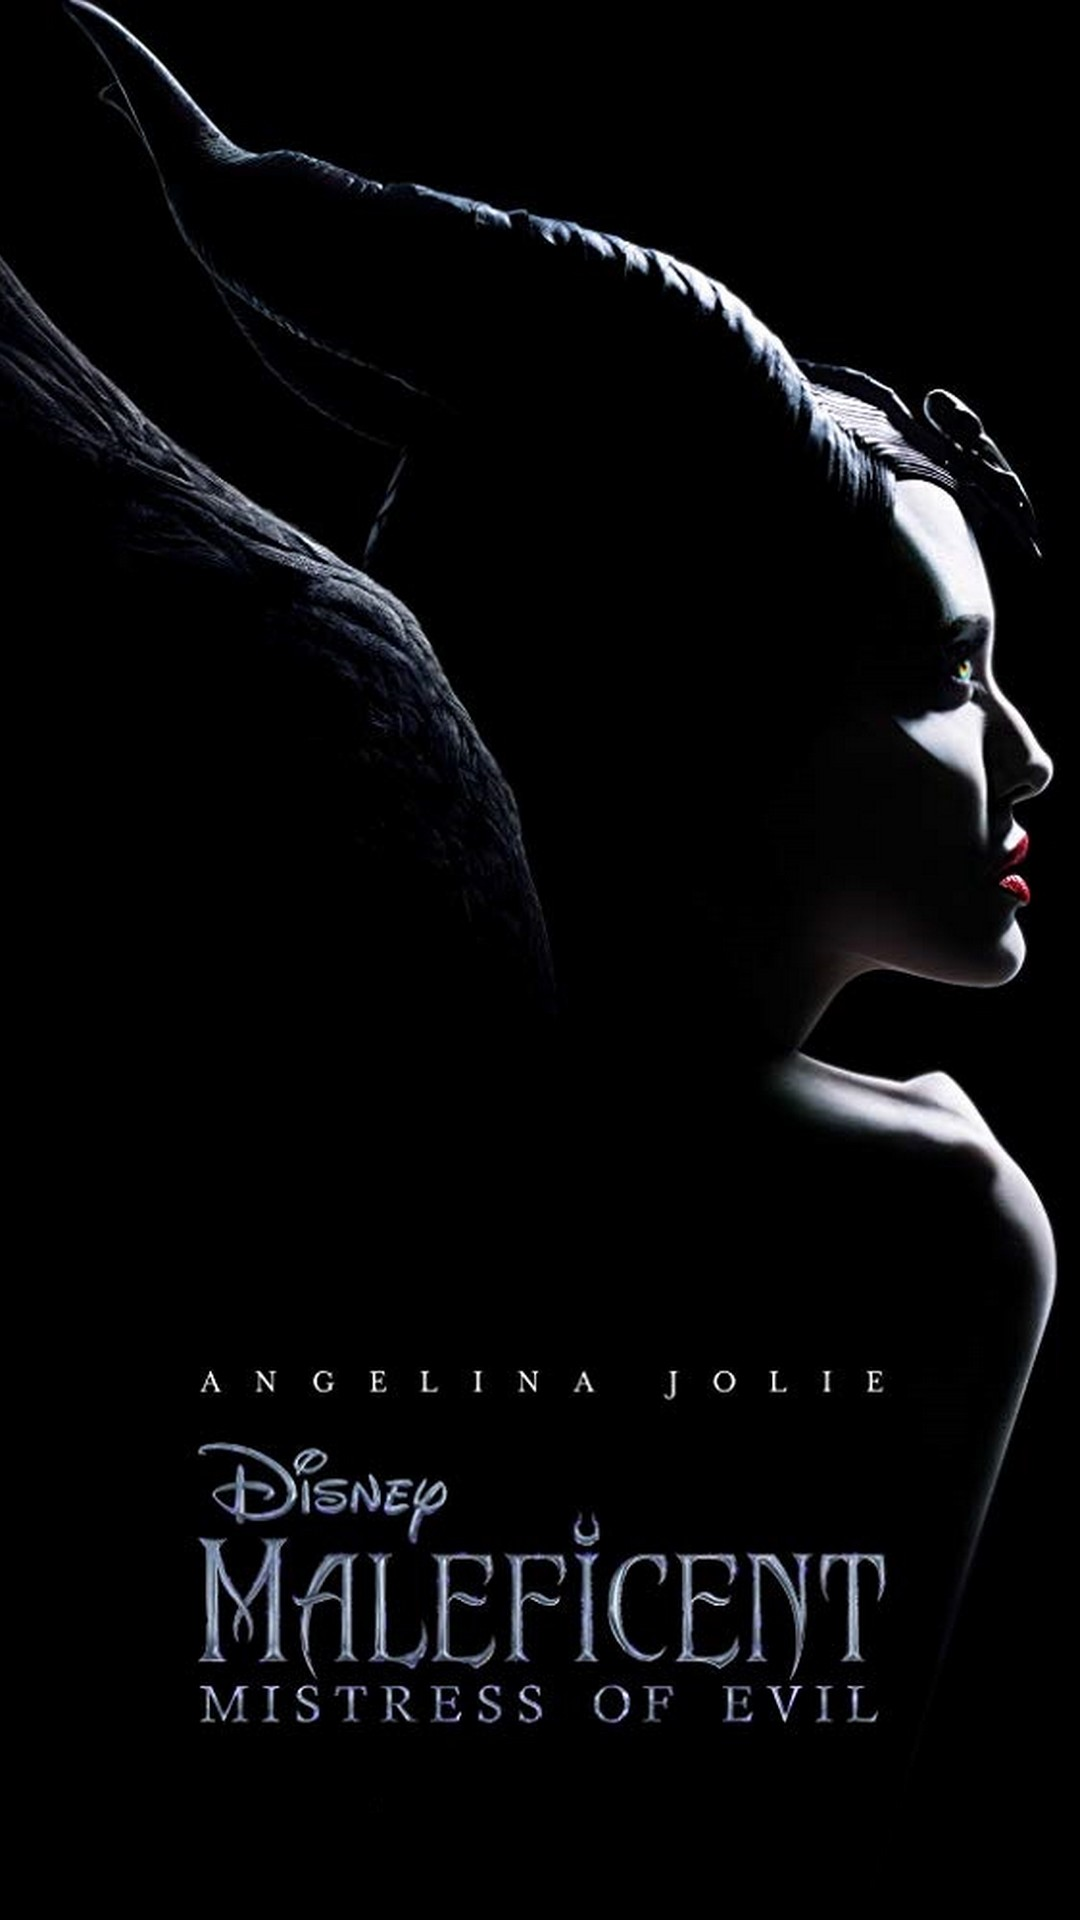 Android Wallpaper Maleficent Mistress of Evil